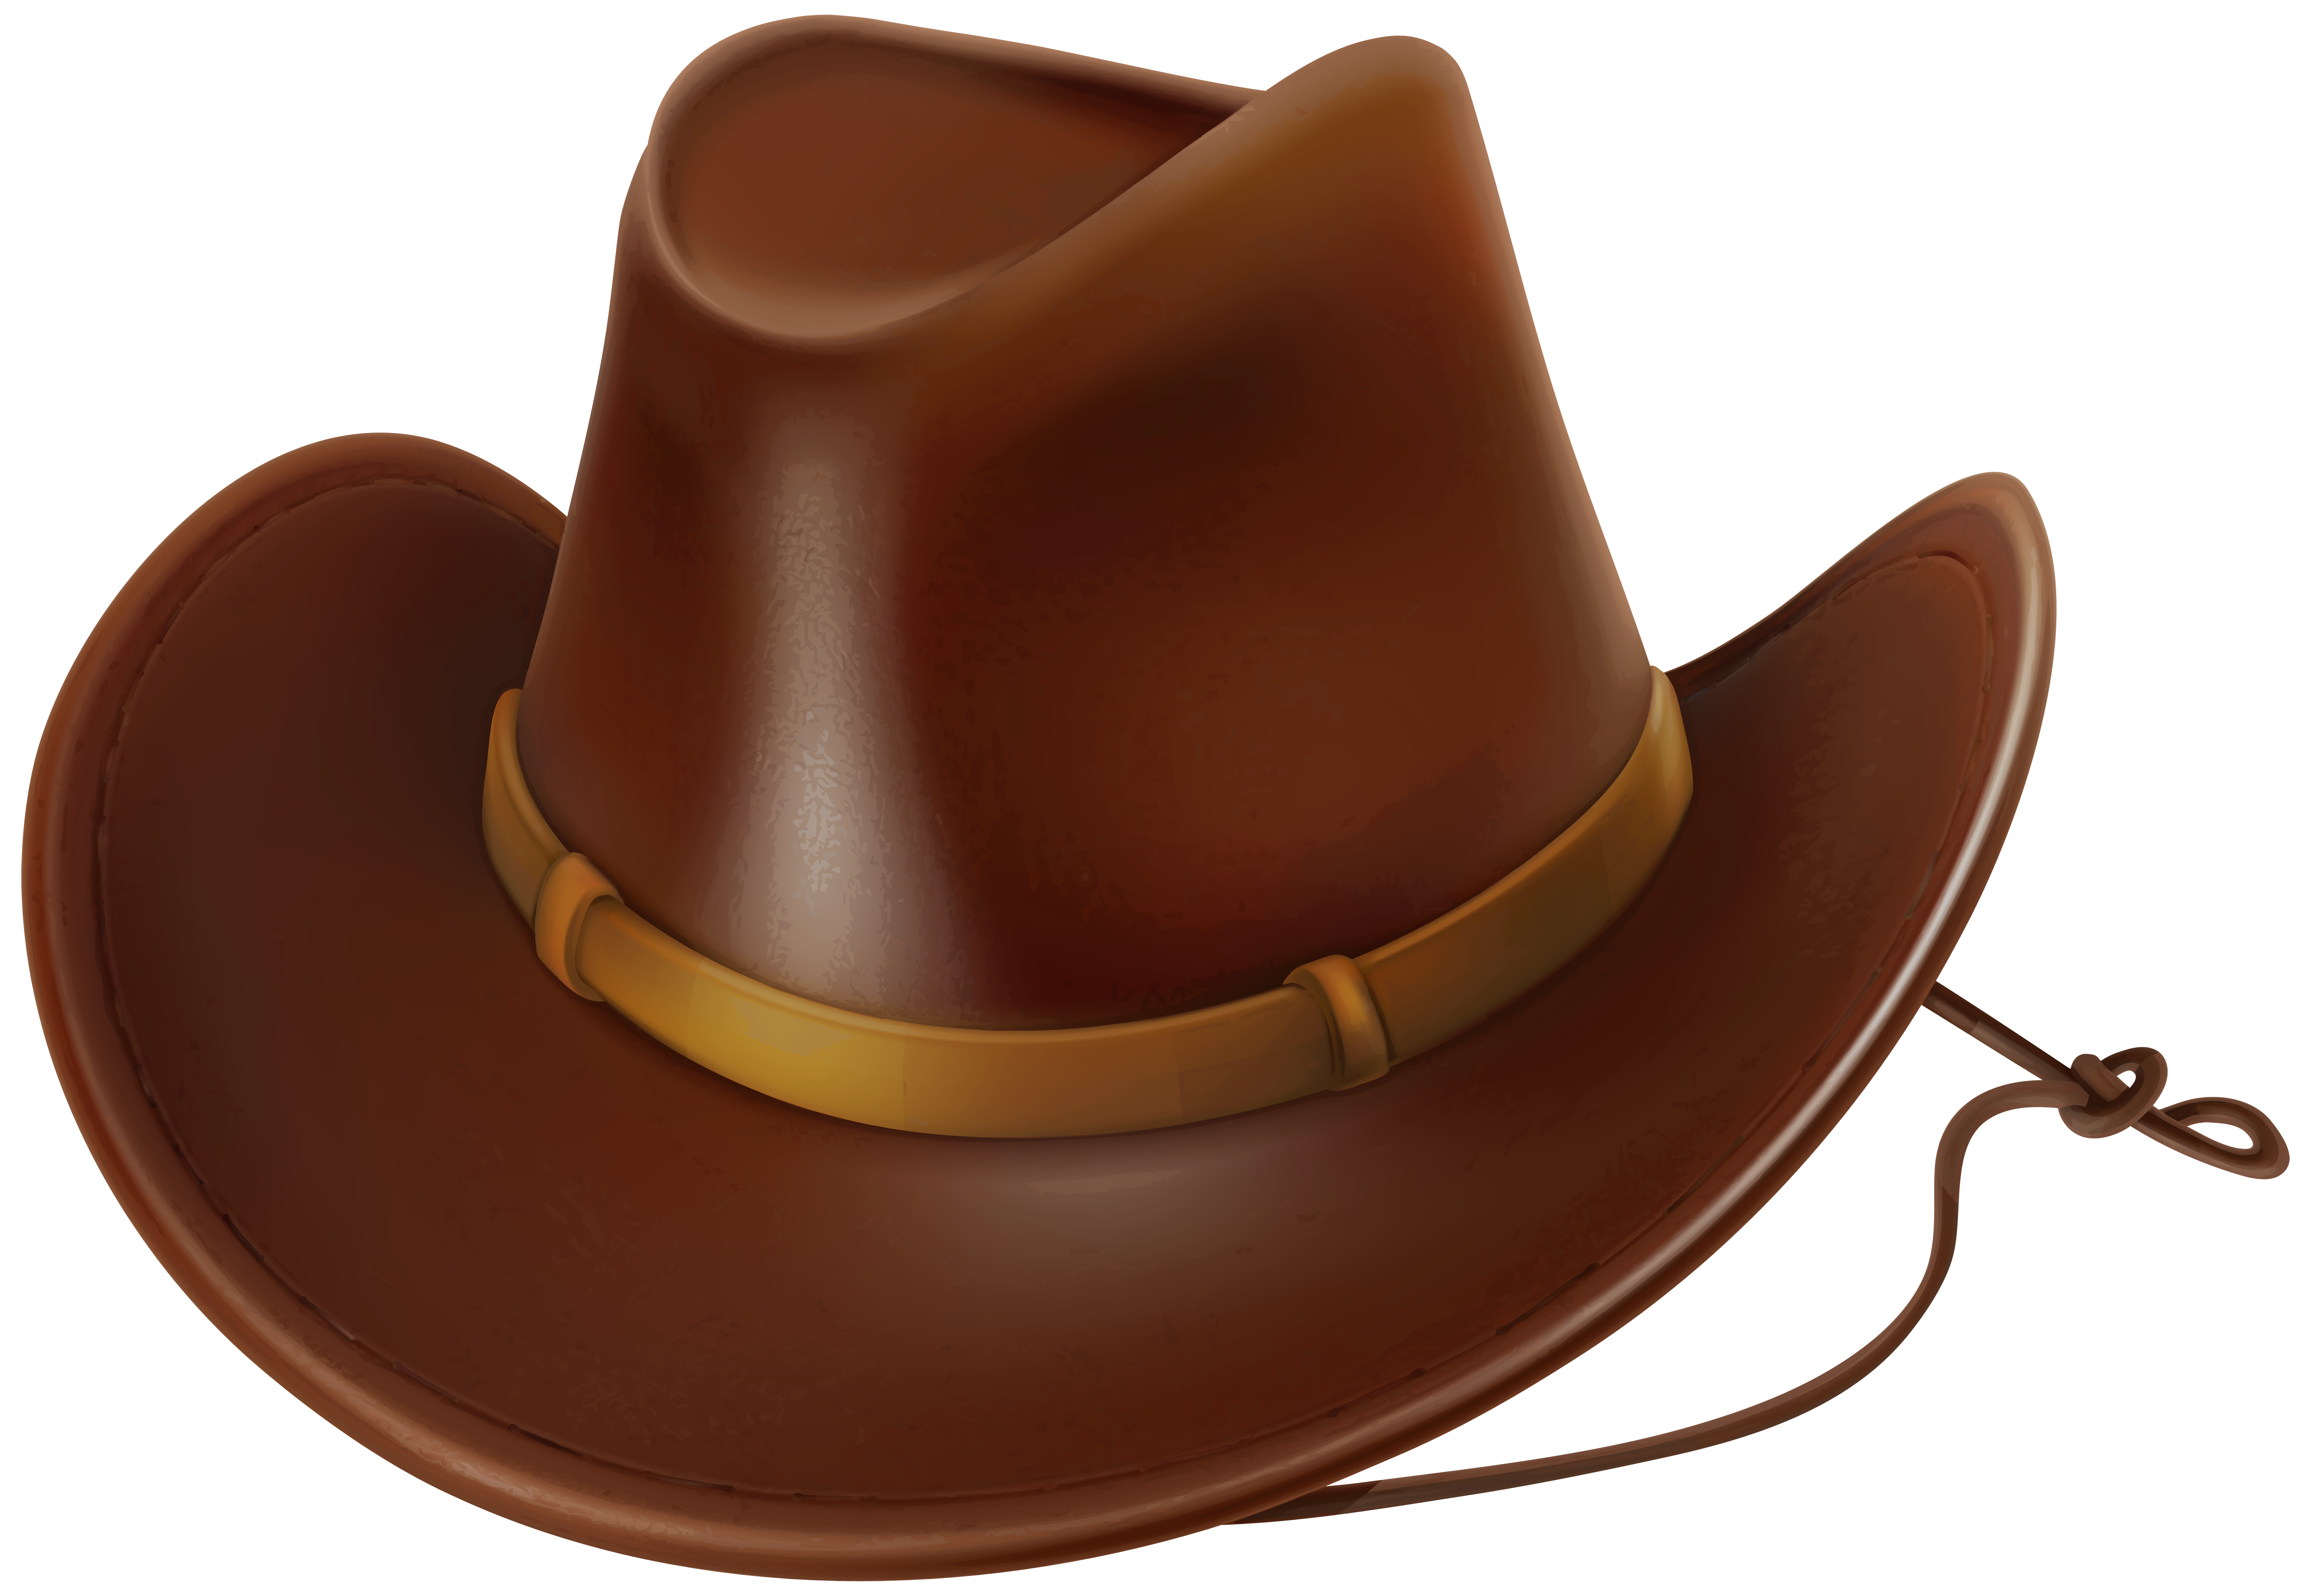 Cowboy Hat Png Clip Art Image Gallery 1701417 Png Images Pngio Cowboys definitely has its own style. cowboy hat png clip art image gallery 1701417 png images pngio